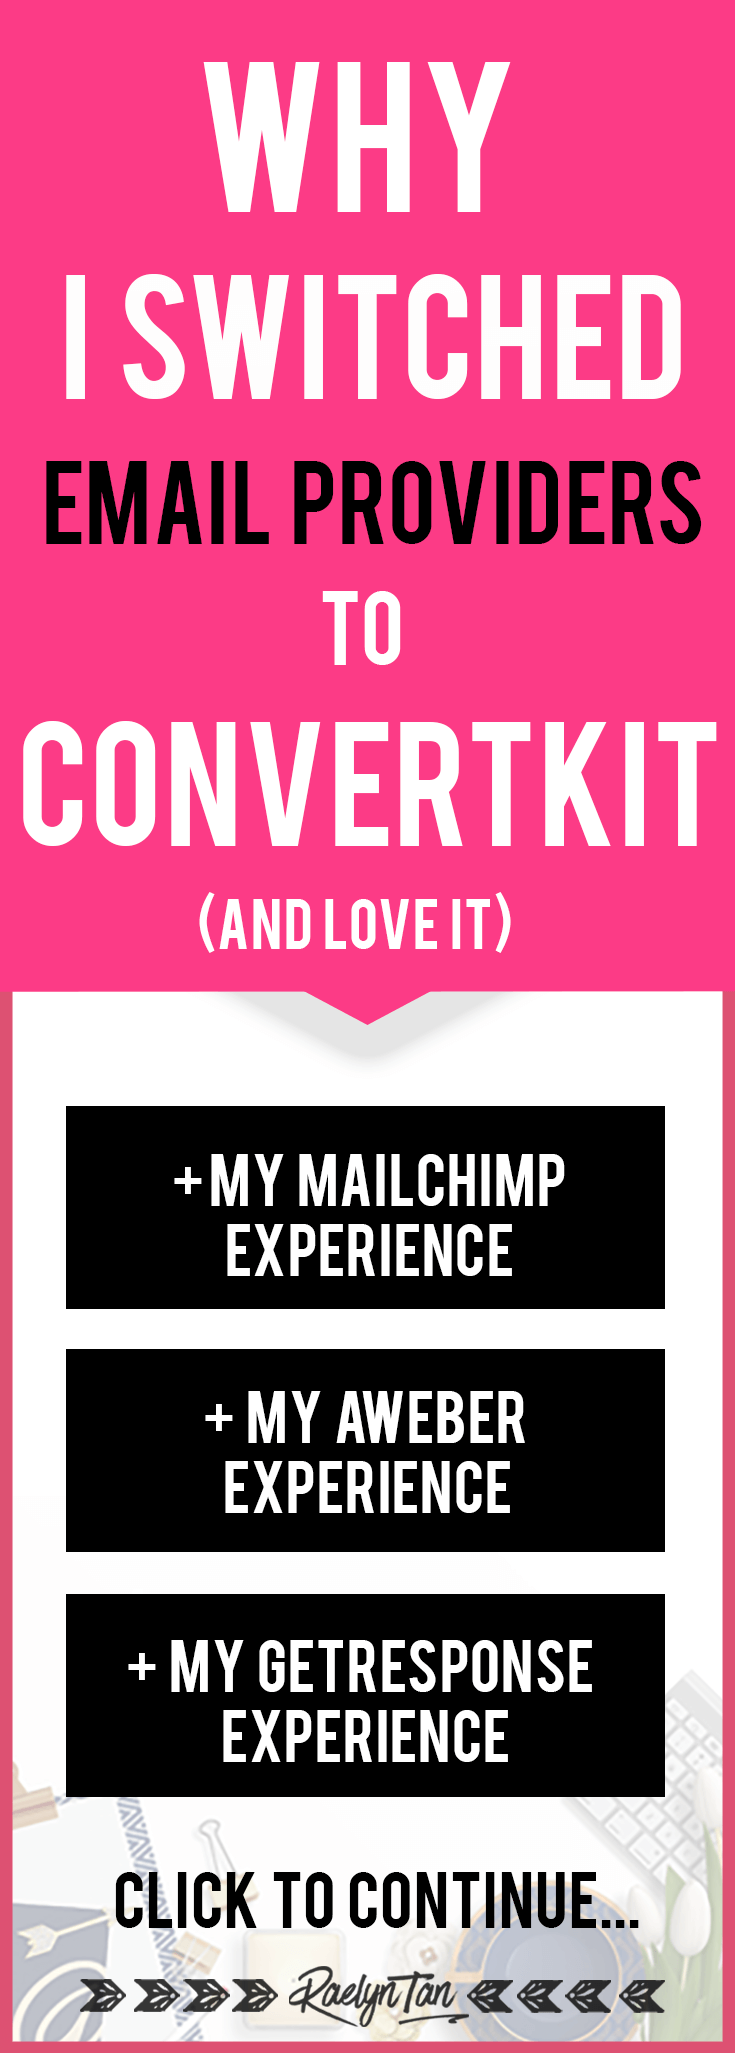 Why I switched to using Convertkit as my email service provider: Convertkit VS Mailchimp VS Aweber VS Getreponse. Use Convertkit to manage your subscribers and grow your email list! (Short tutorial for Convertkit is included too)